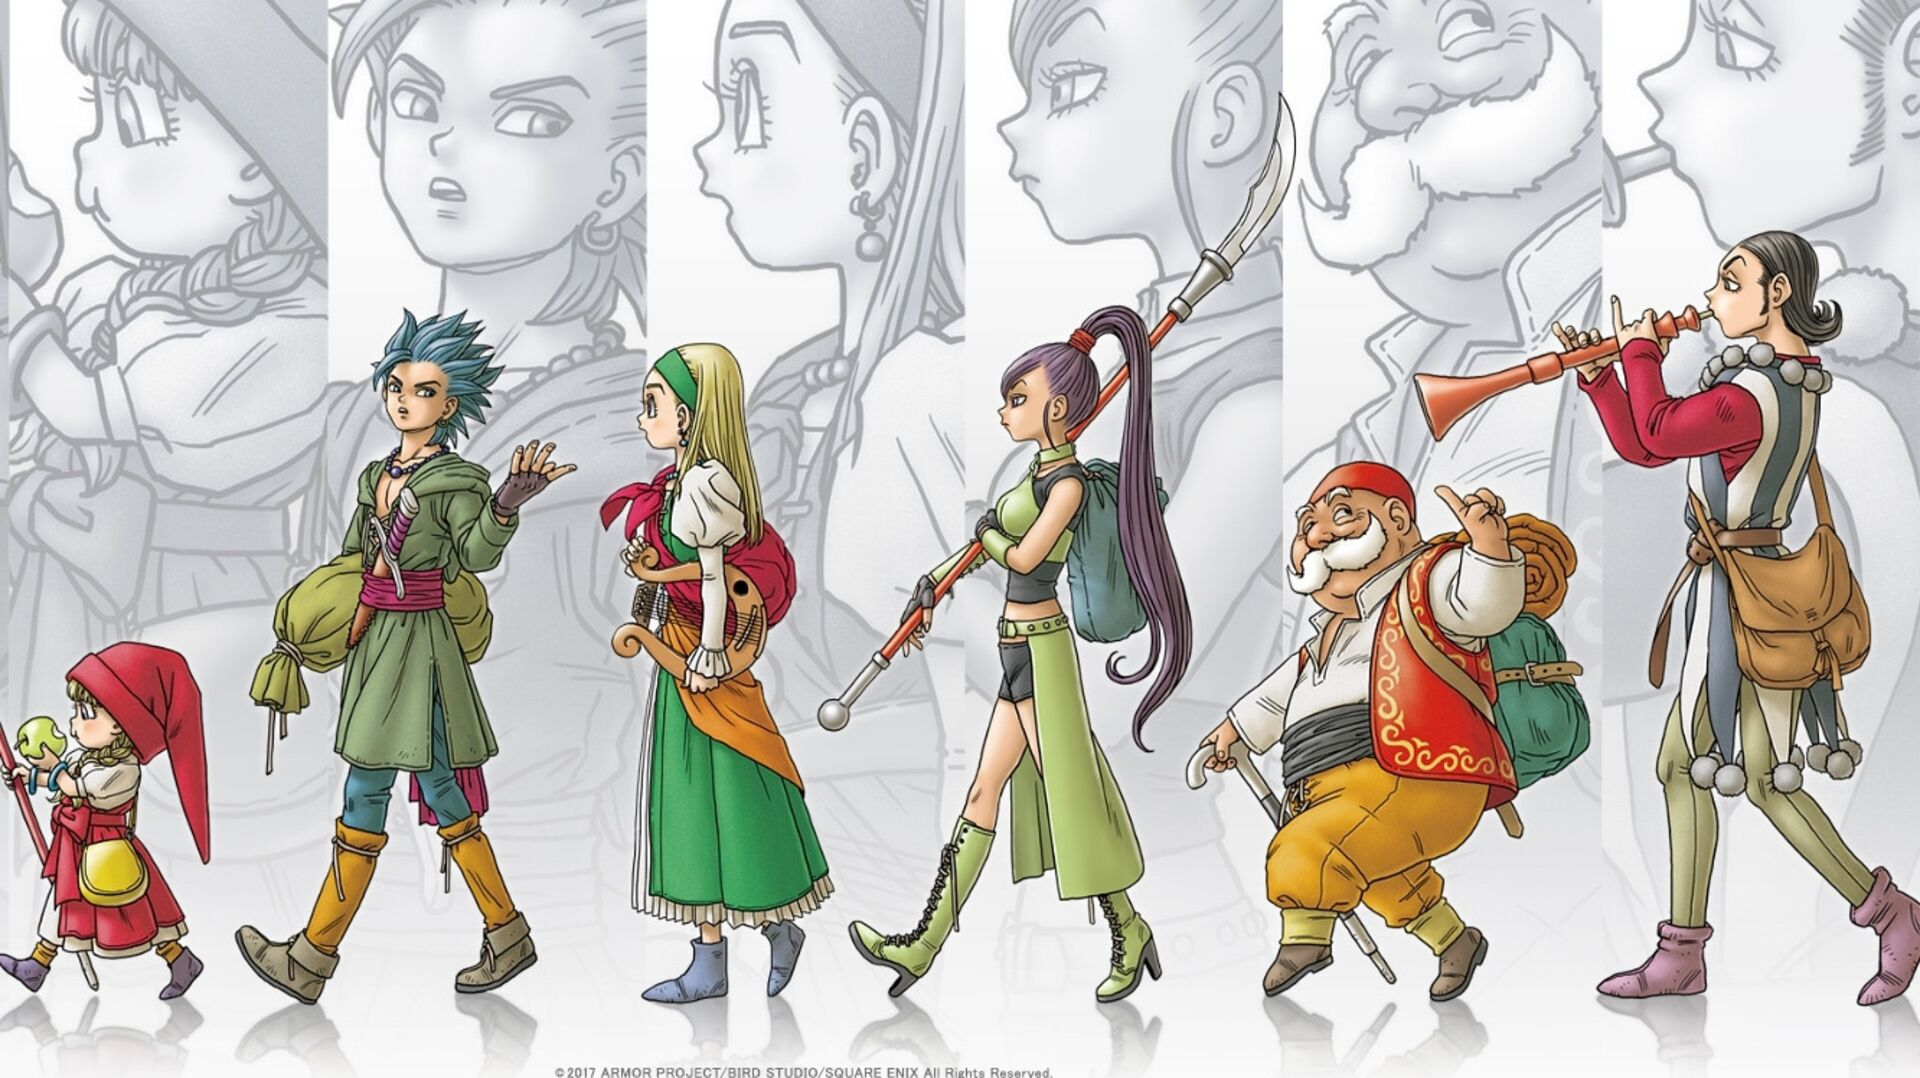 Dragon Quest 11: Echoes of an Elusive Age review - a